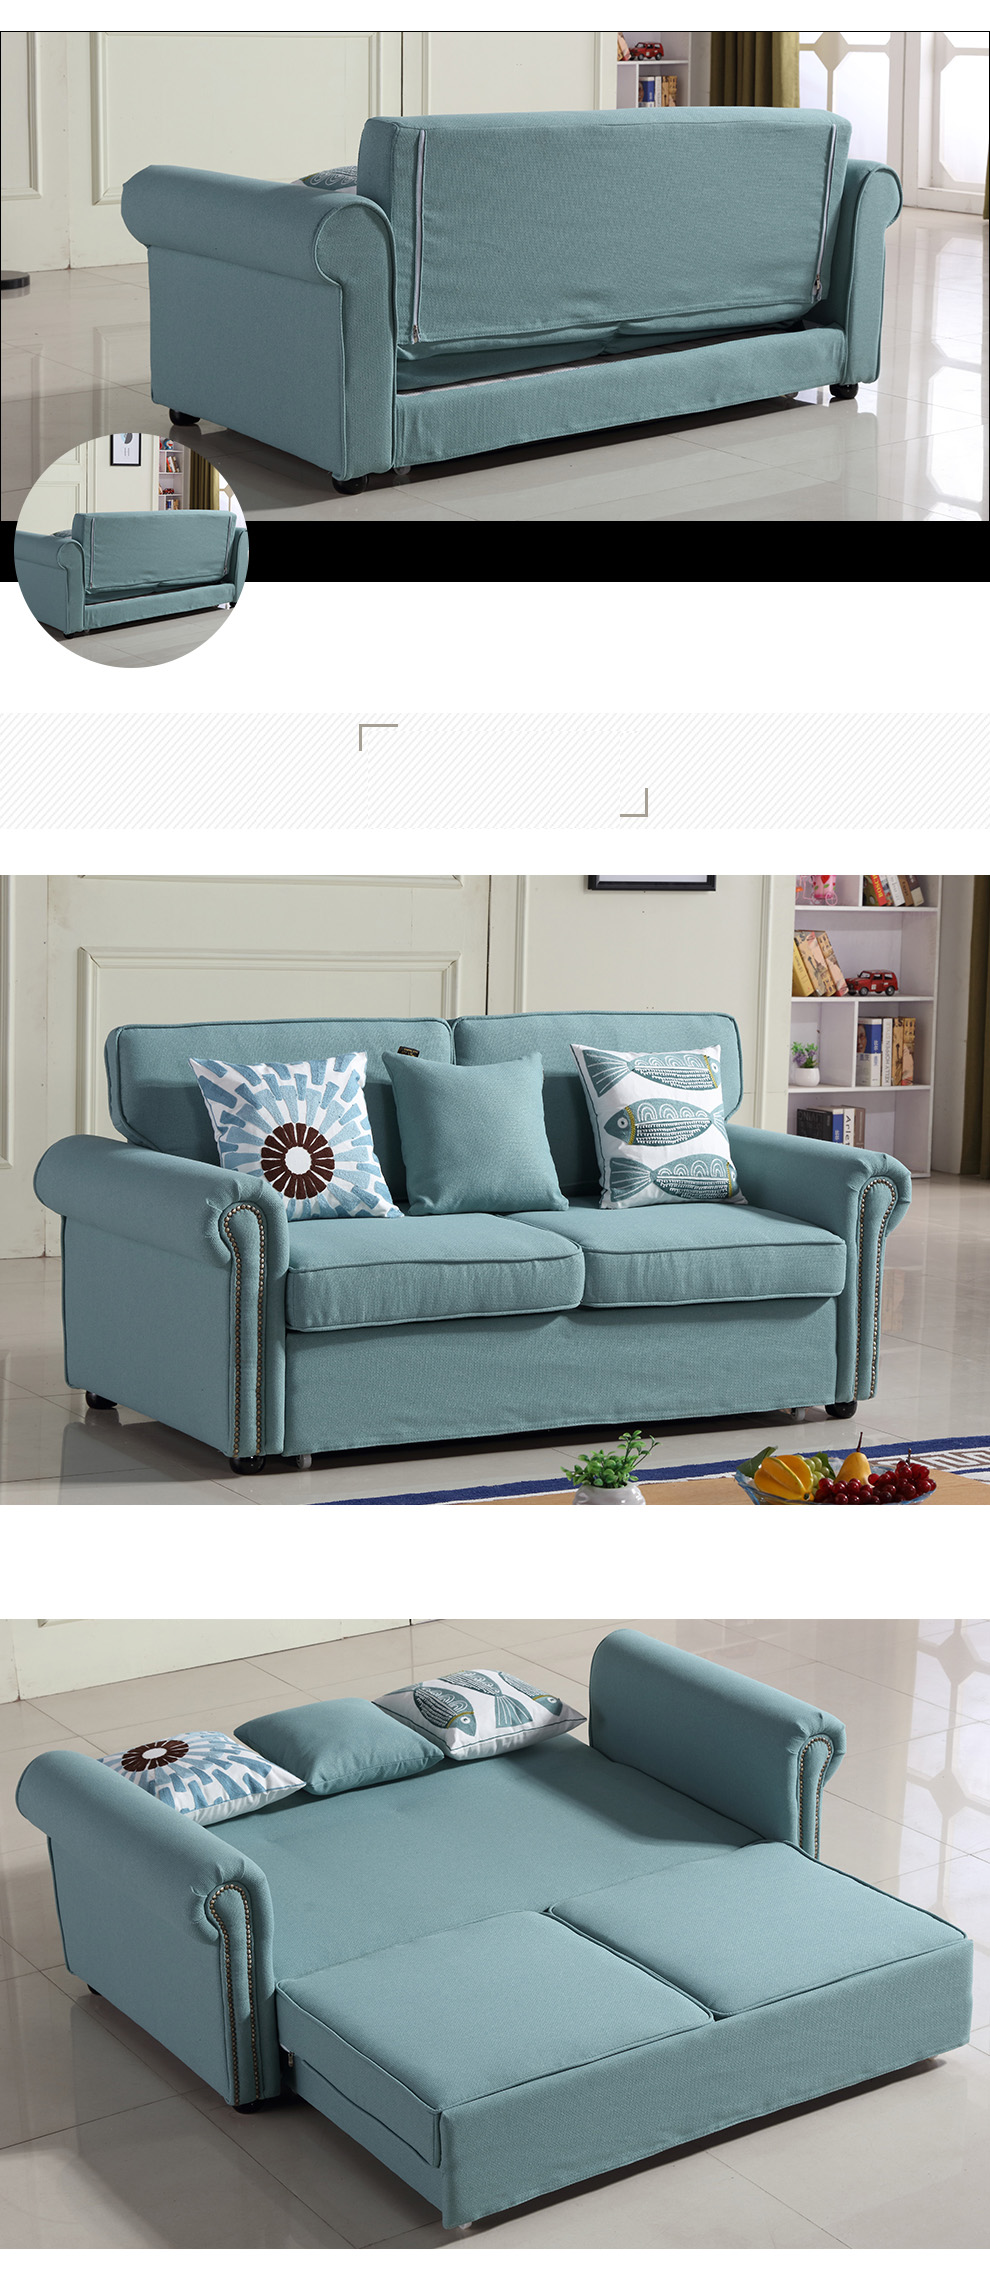 city leather beds value furniture and bed leisure cheap full sofas inexpensive sleeper of pu awesome sofa merax size